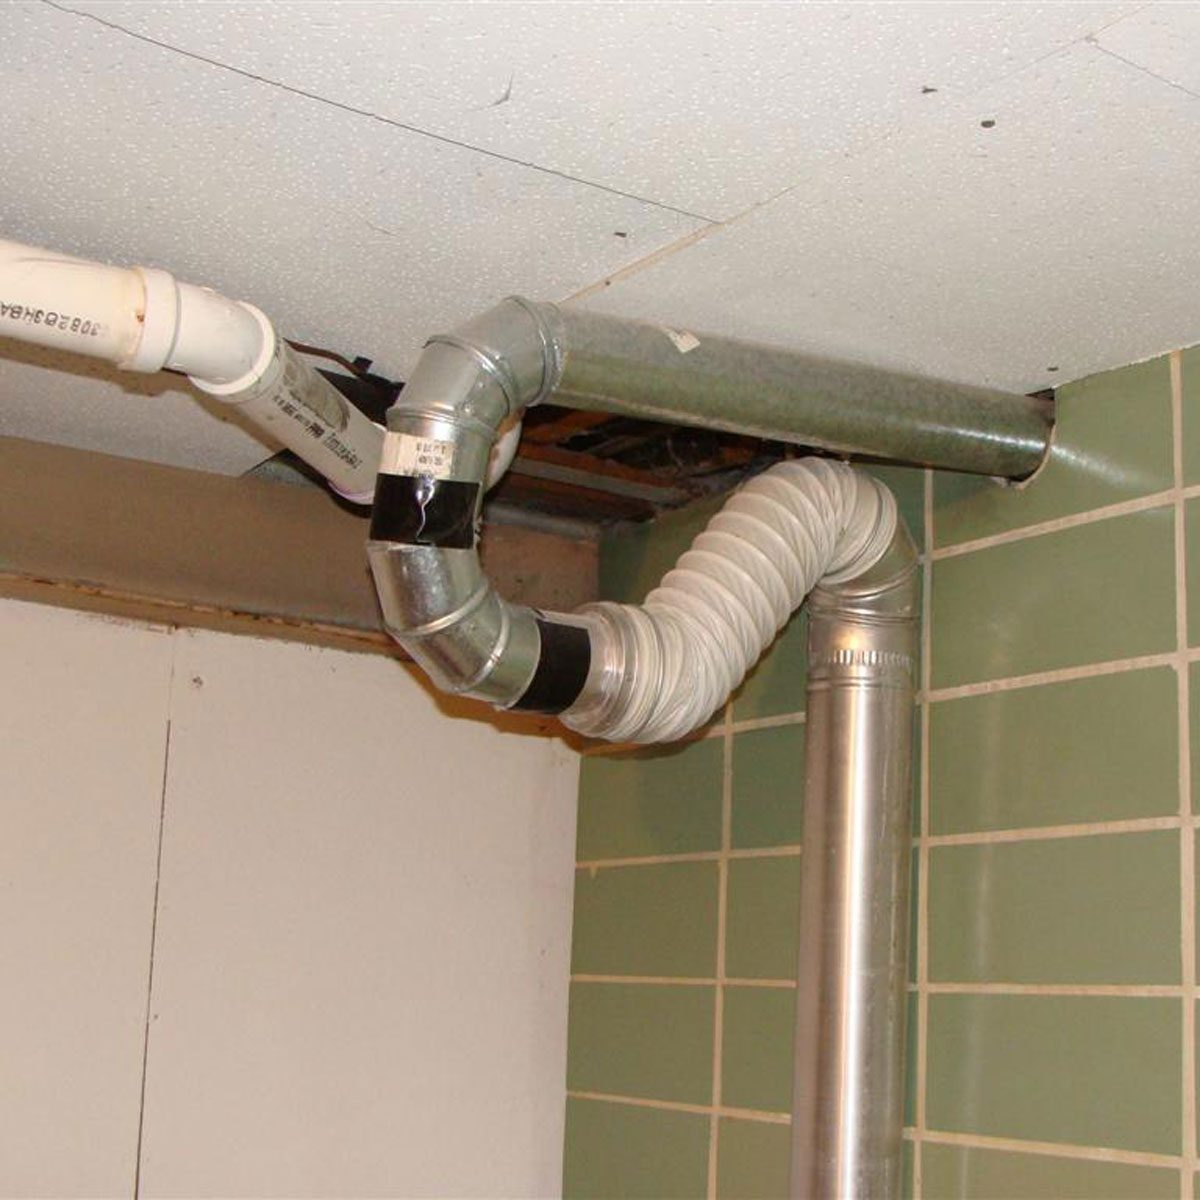 100 Plumbing Goofs and Other Scary Stuff The Family Handyman – Plumbing Lesson Plans